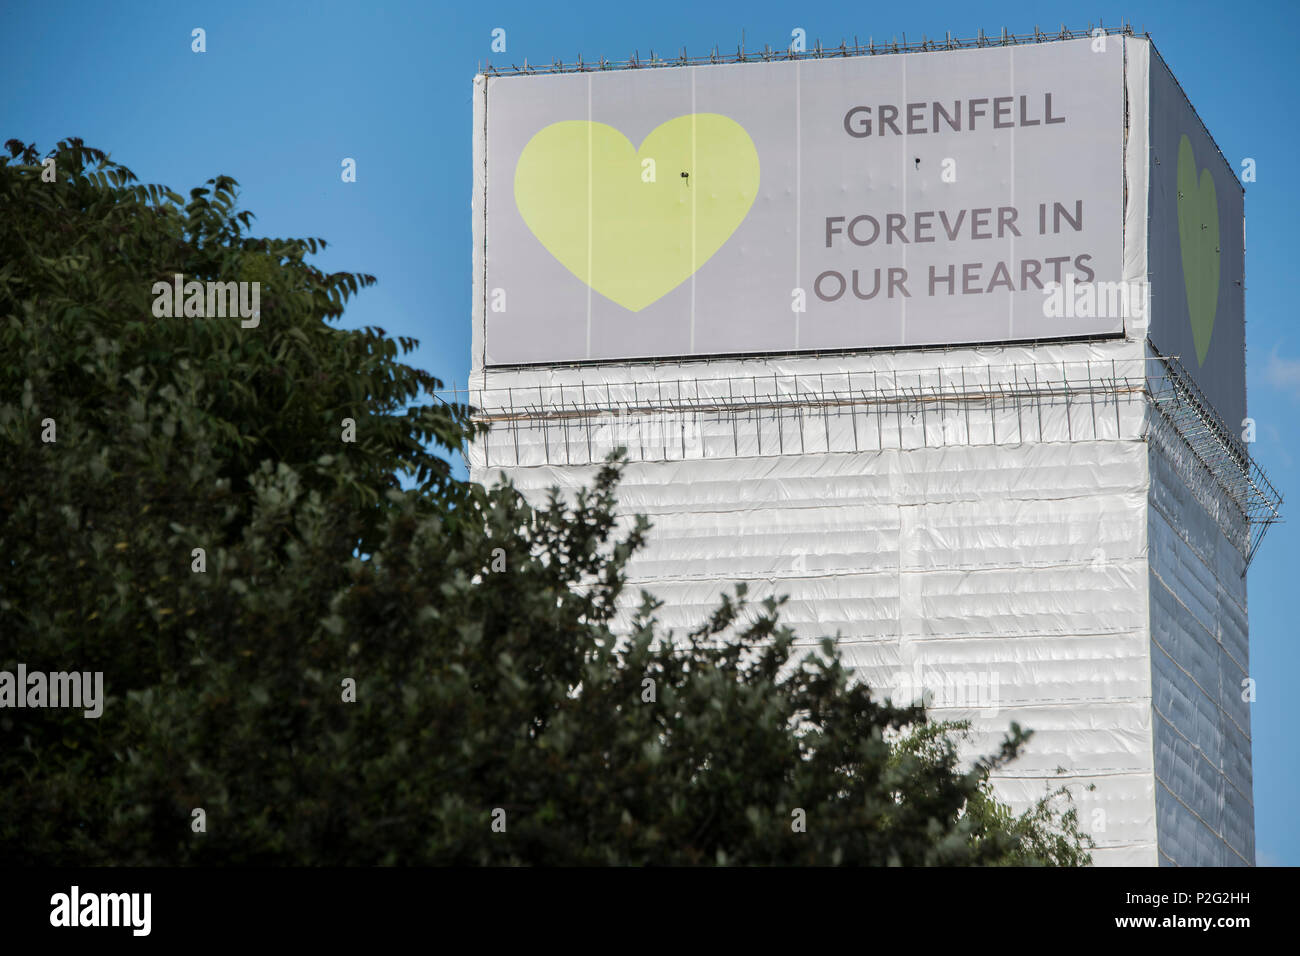 London, UK. 14th June 2018. The cladding on the tower - The first anniversary of the Grenfell Tower Disaster Credit: Guy Bell/Alamy Live News - Stock Image